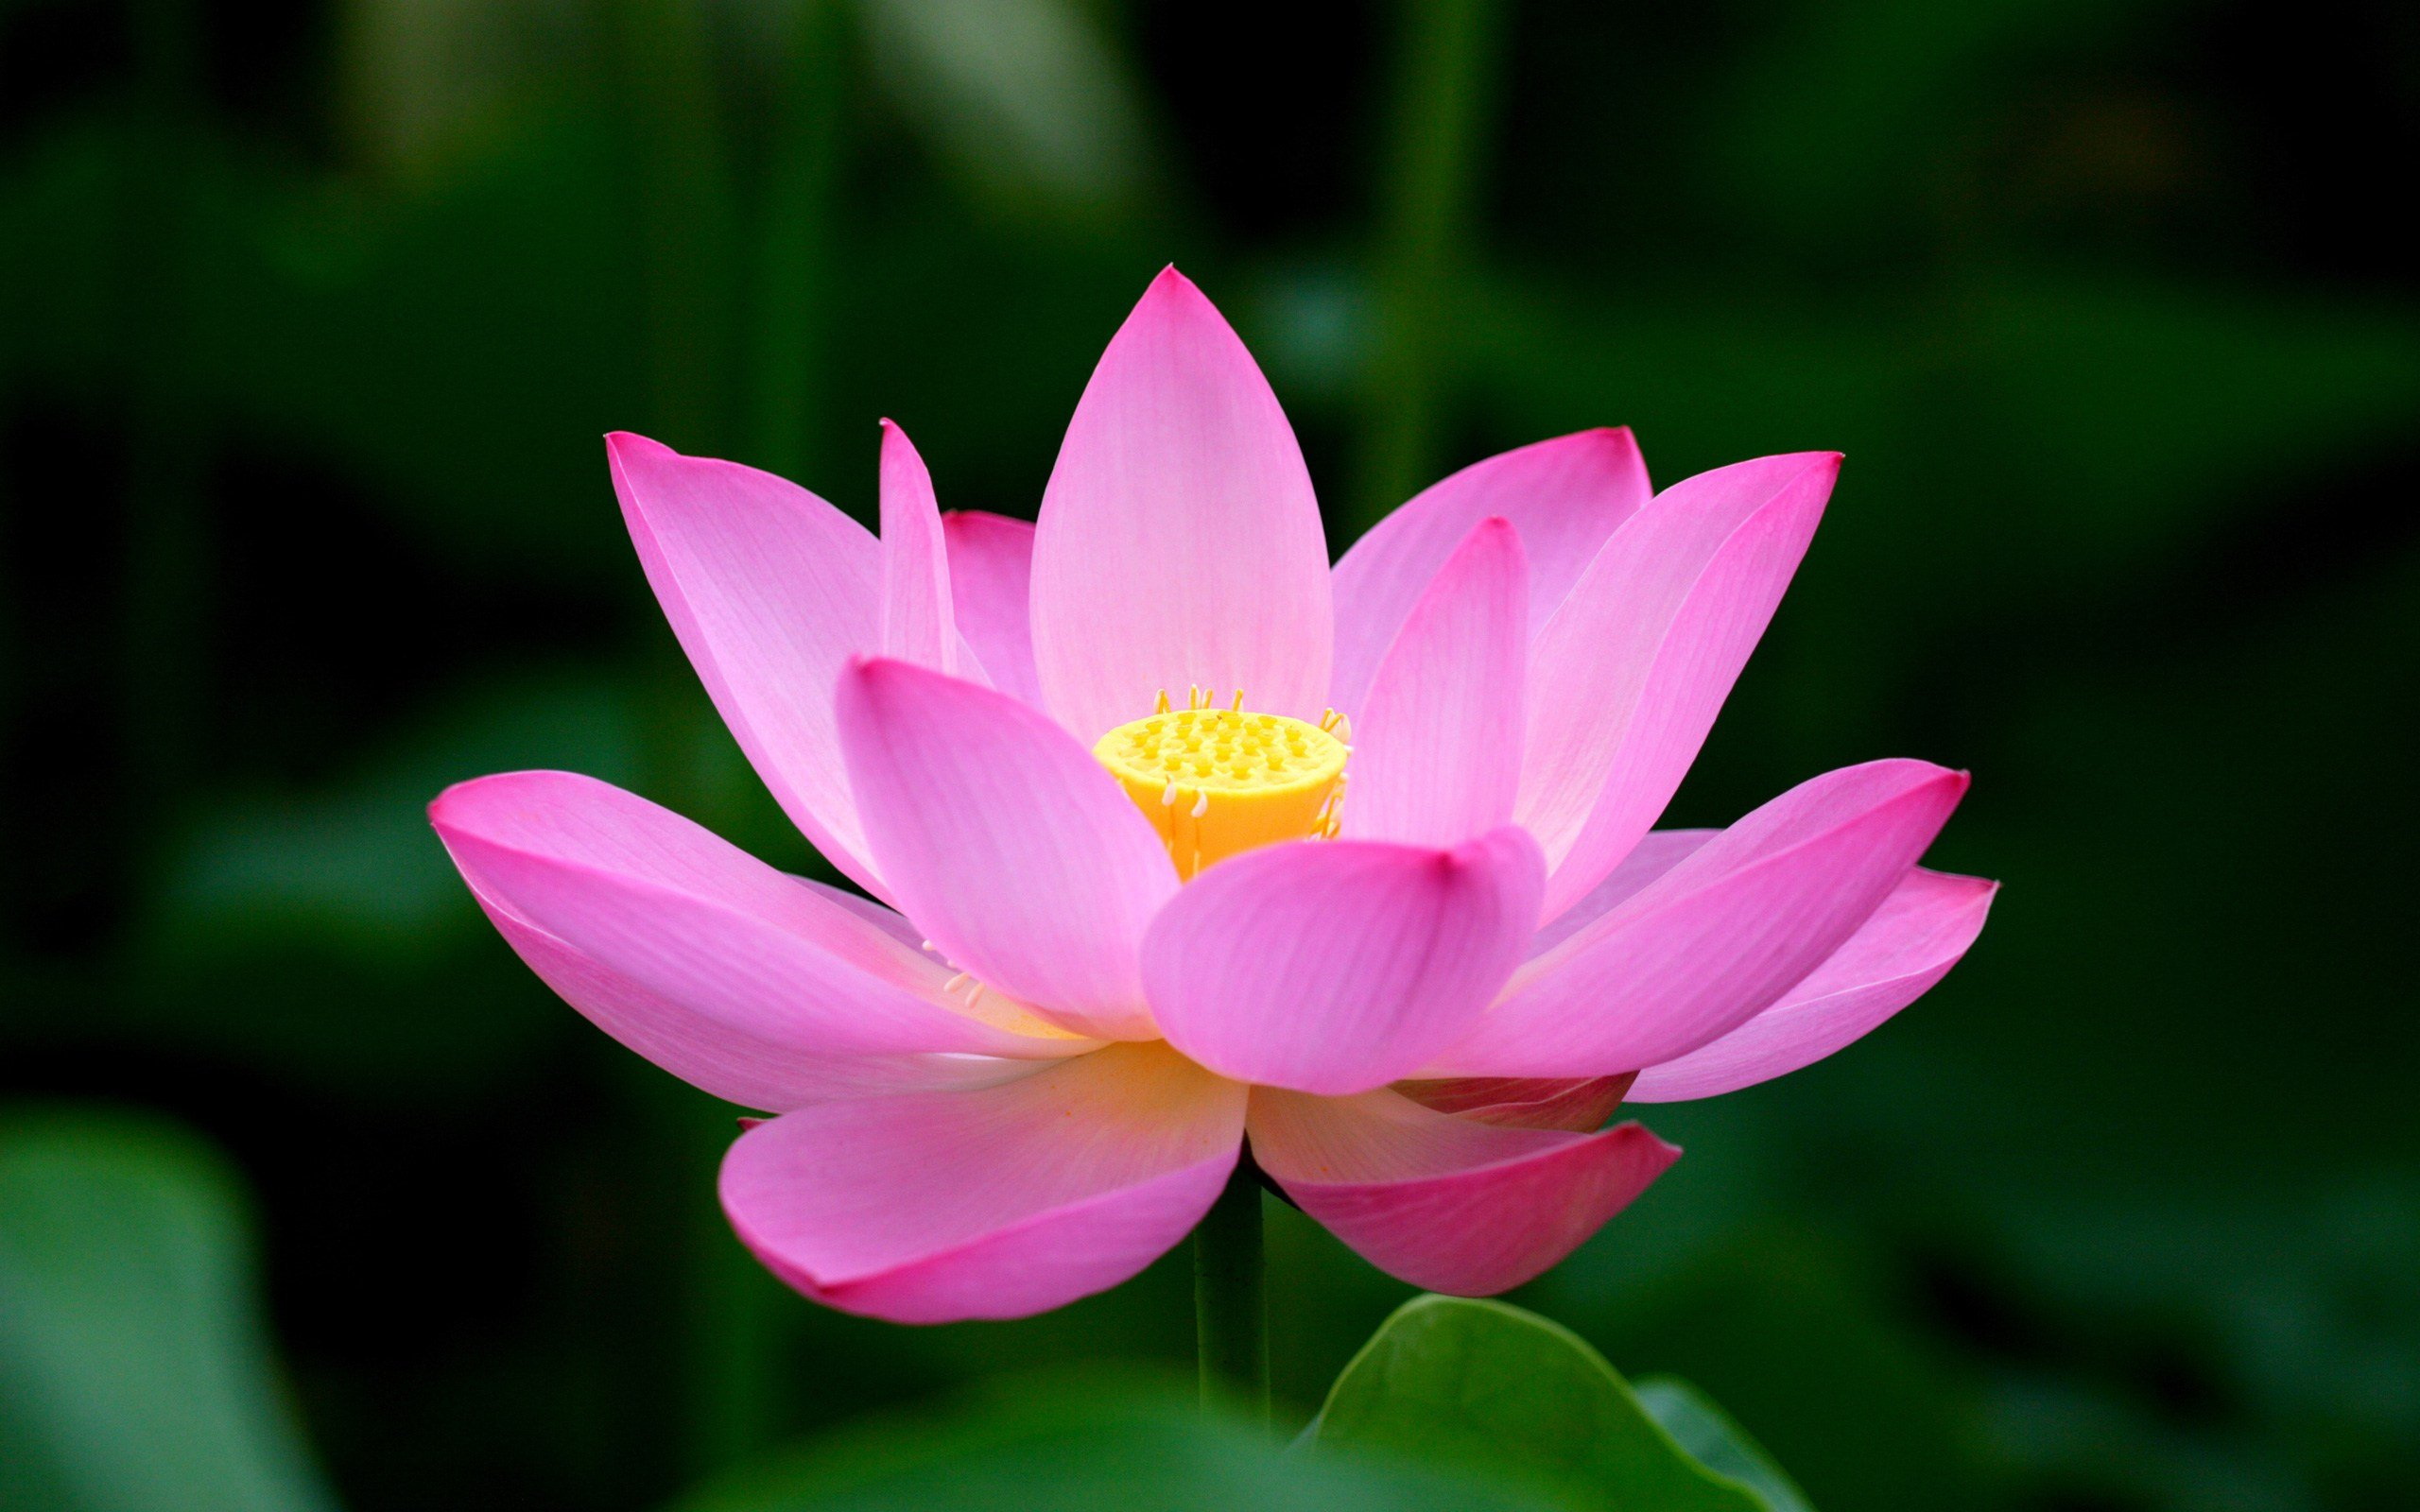 Lotus flower meaning and symbolism mythologian lotus flower meaning and symbolism mightylinksfo